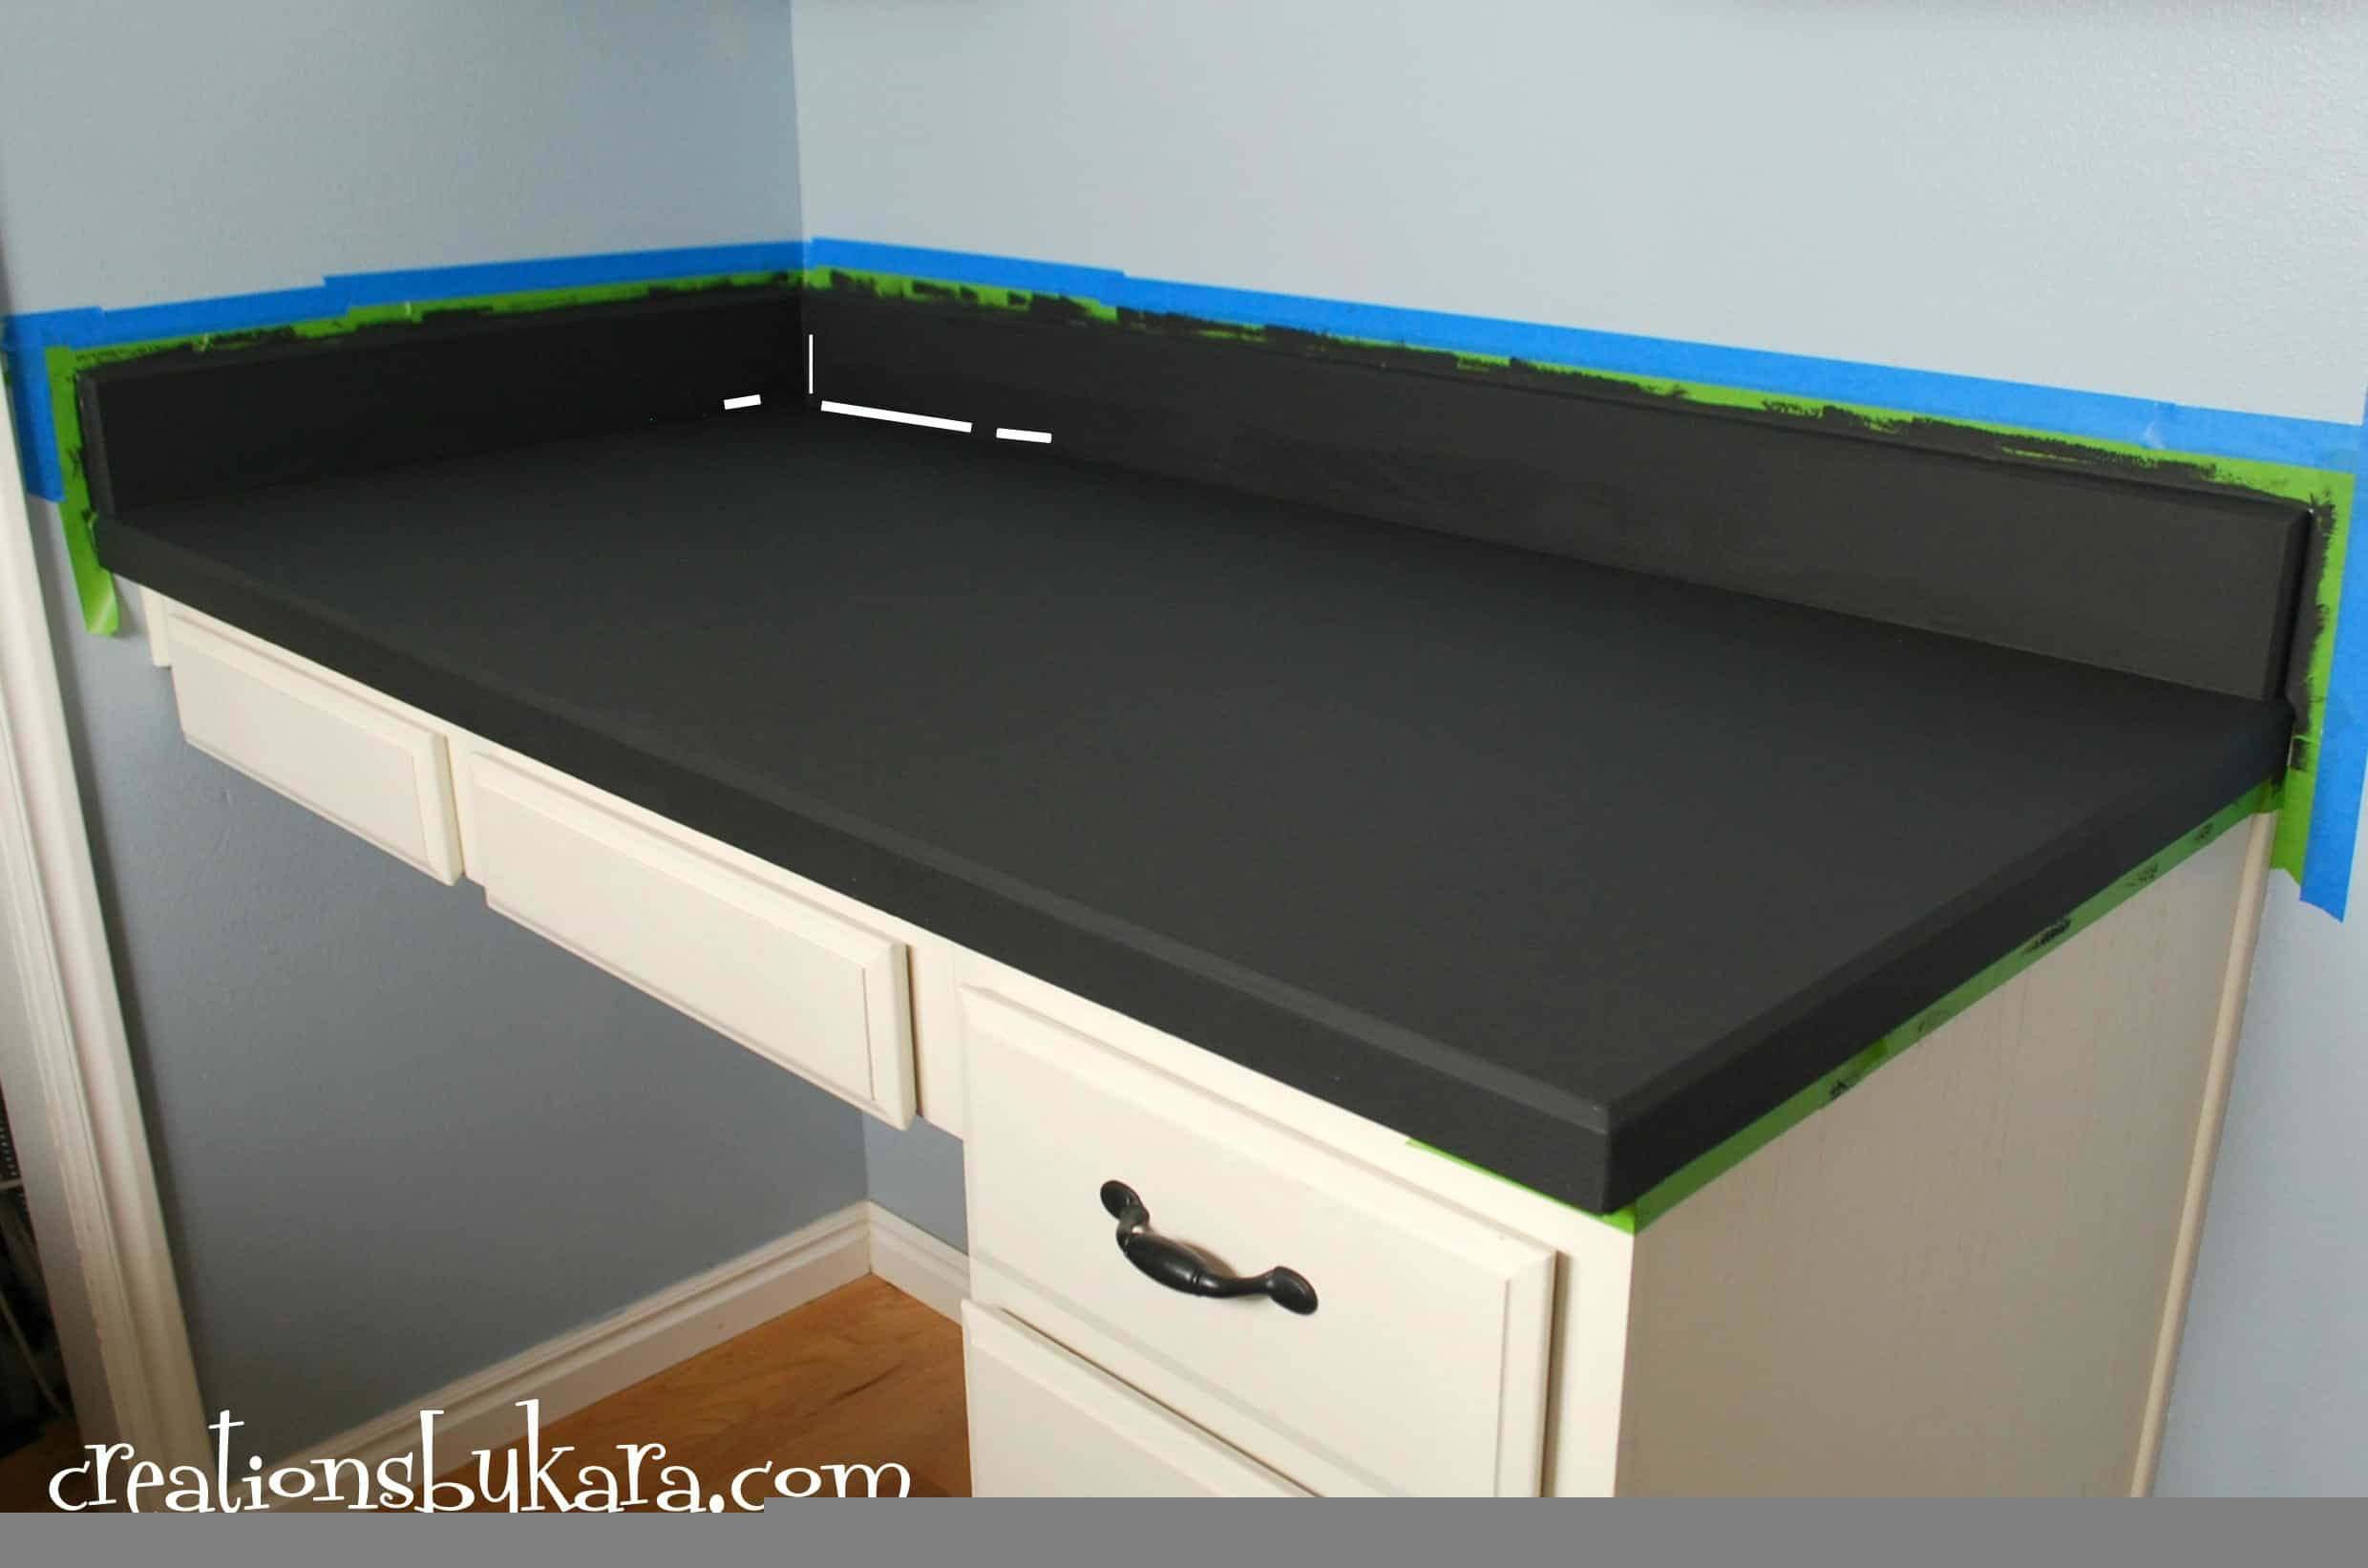 Diy Kitchen Counter And Cabinets